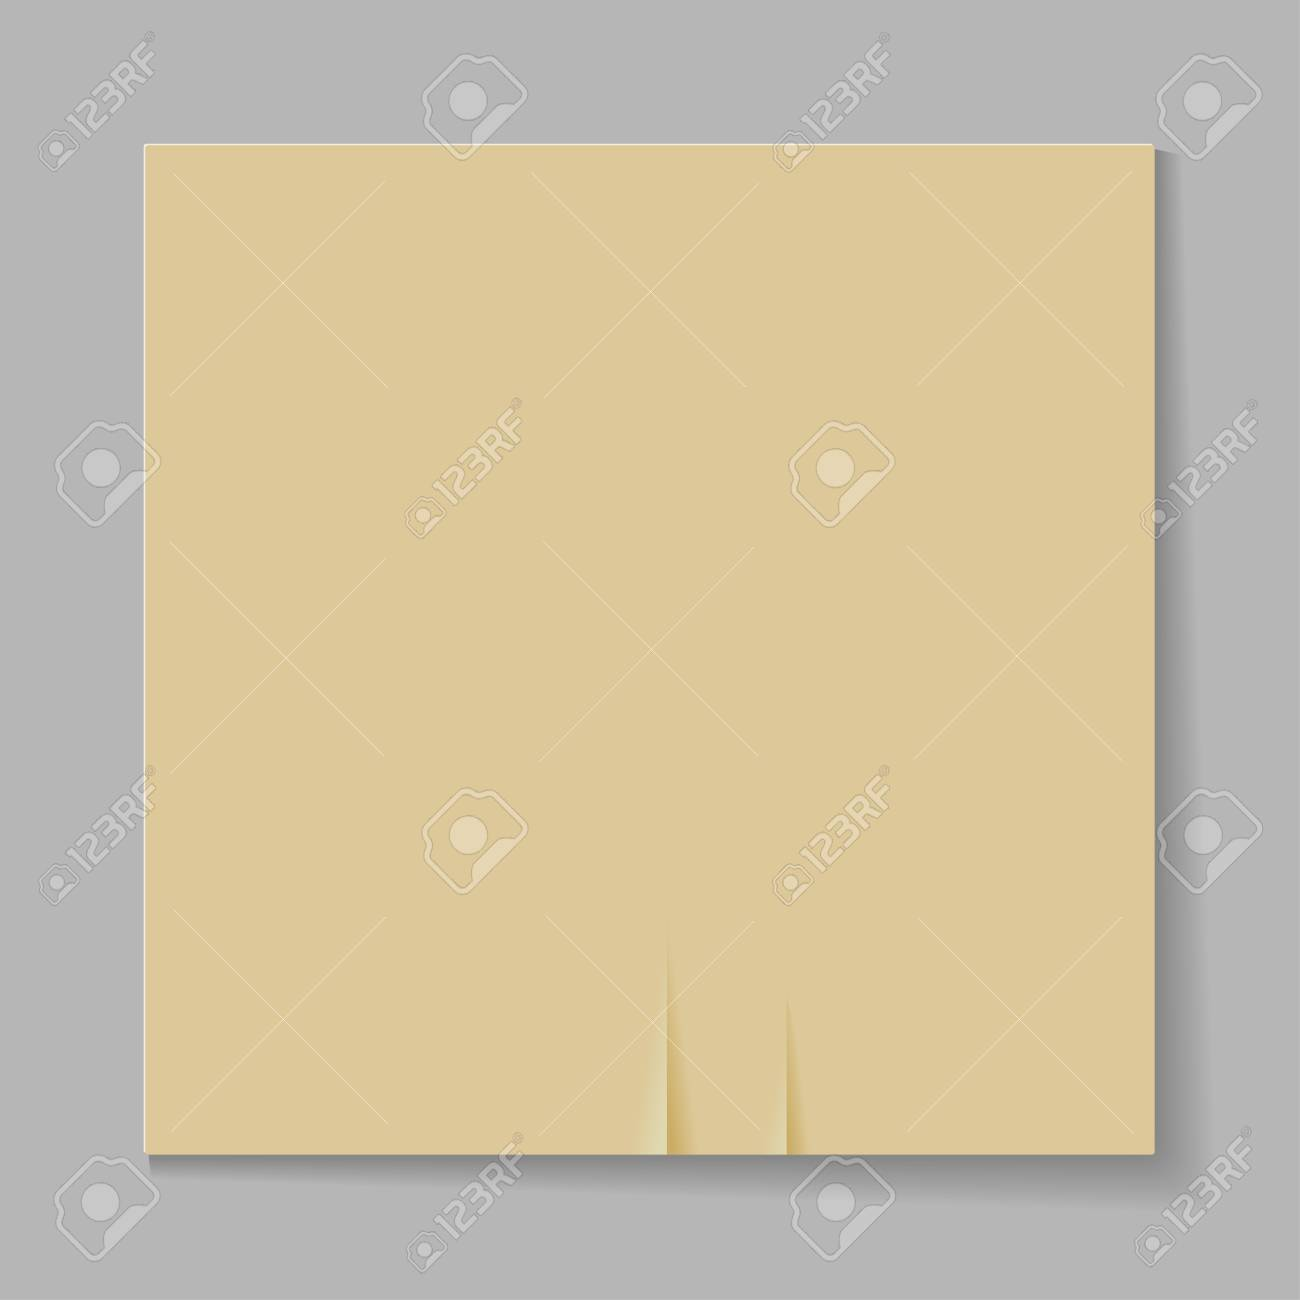 Illustration of a sheet of paper on a gray background Stock Vector - 20594430